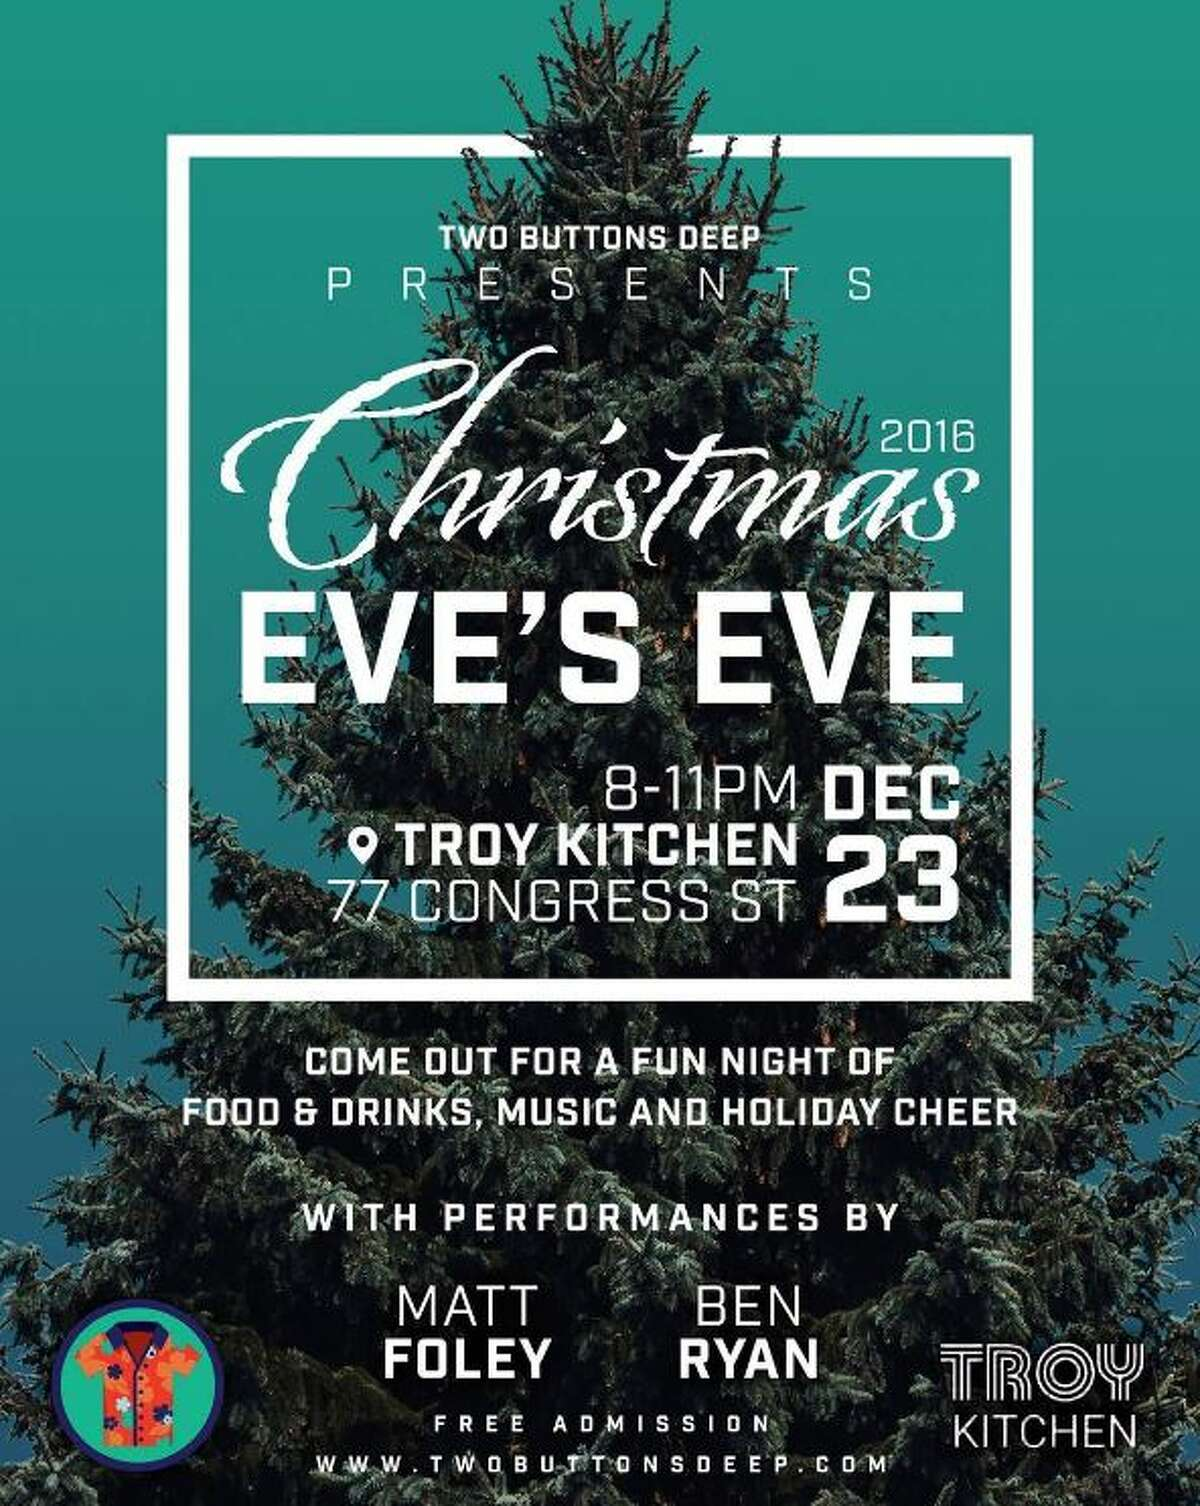 Christmas Eve's Eve. Food, drinks, music and holiday cheer. Presented by Two Buttons Deep. Free admission.When: Friday, Dec. 23, 8 - 11 PM. Where: Troy Kitchen, 77 Congress St., Troy. For more information, visit their Facebook page.